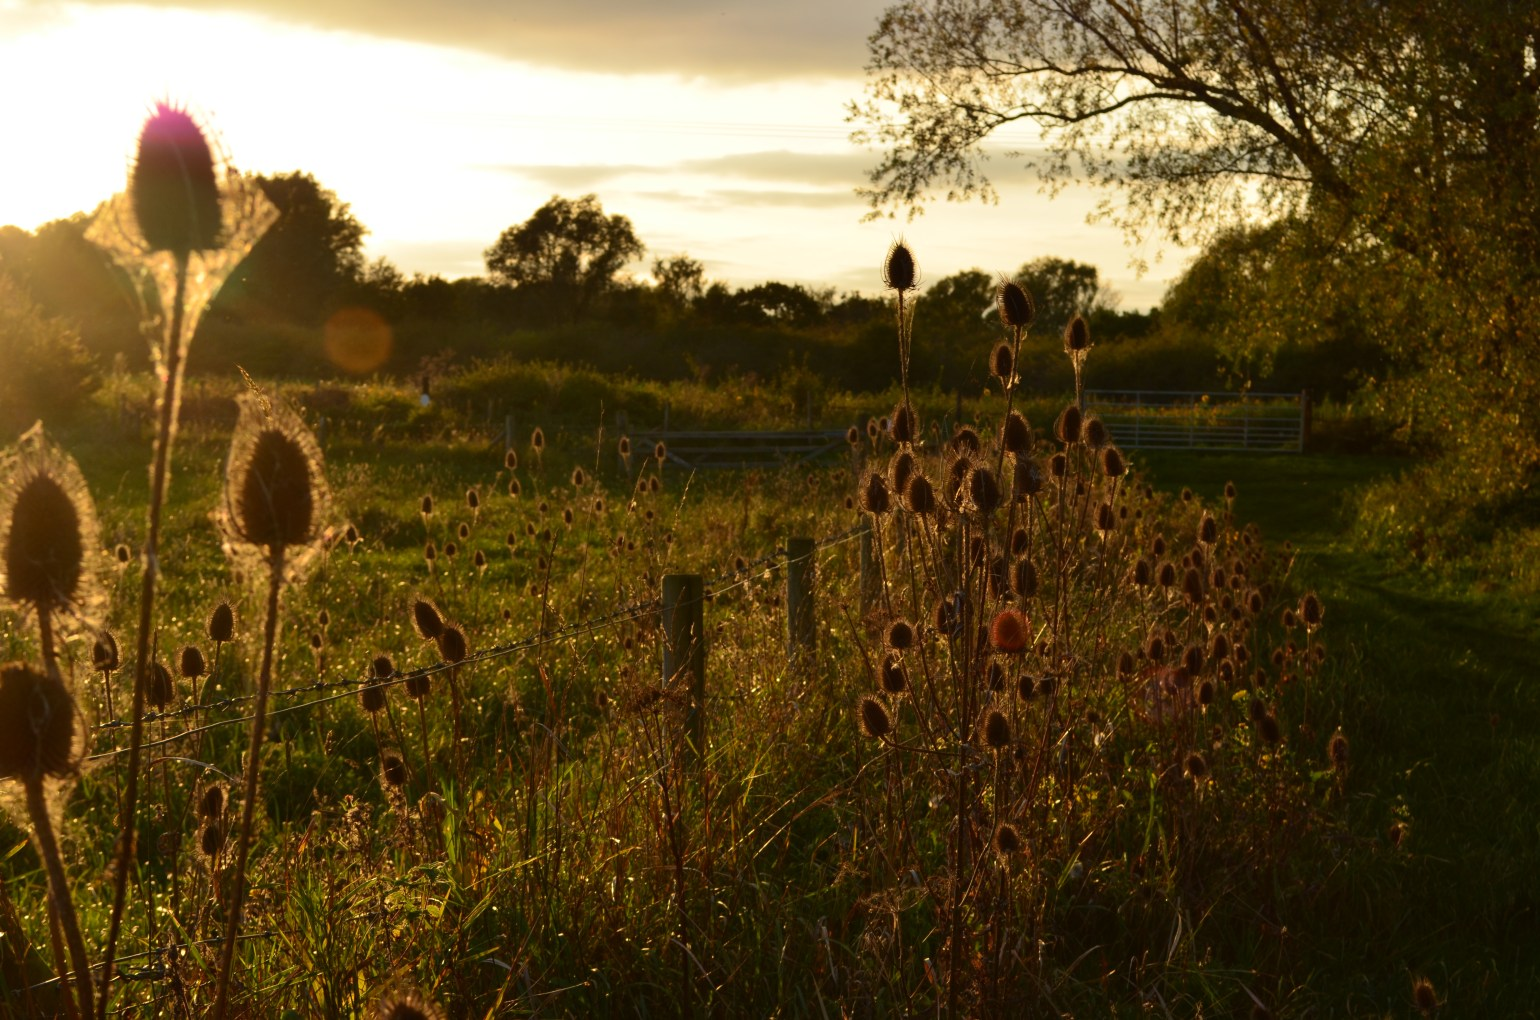 Sun catching the edges of the teasels along the Great Meadow at Paxton Pits in October